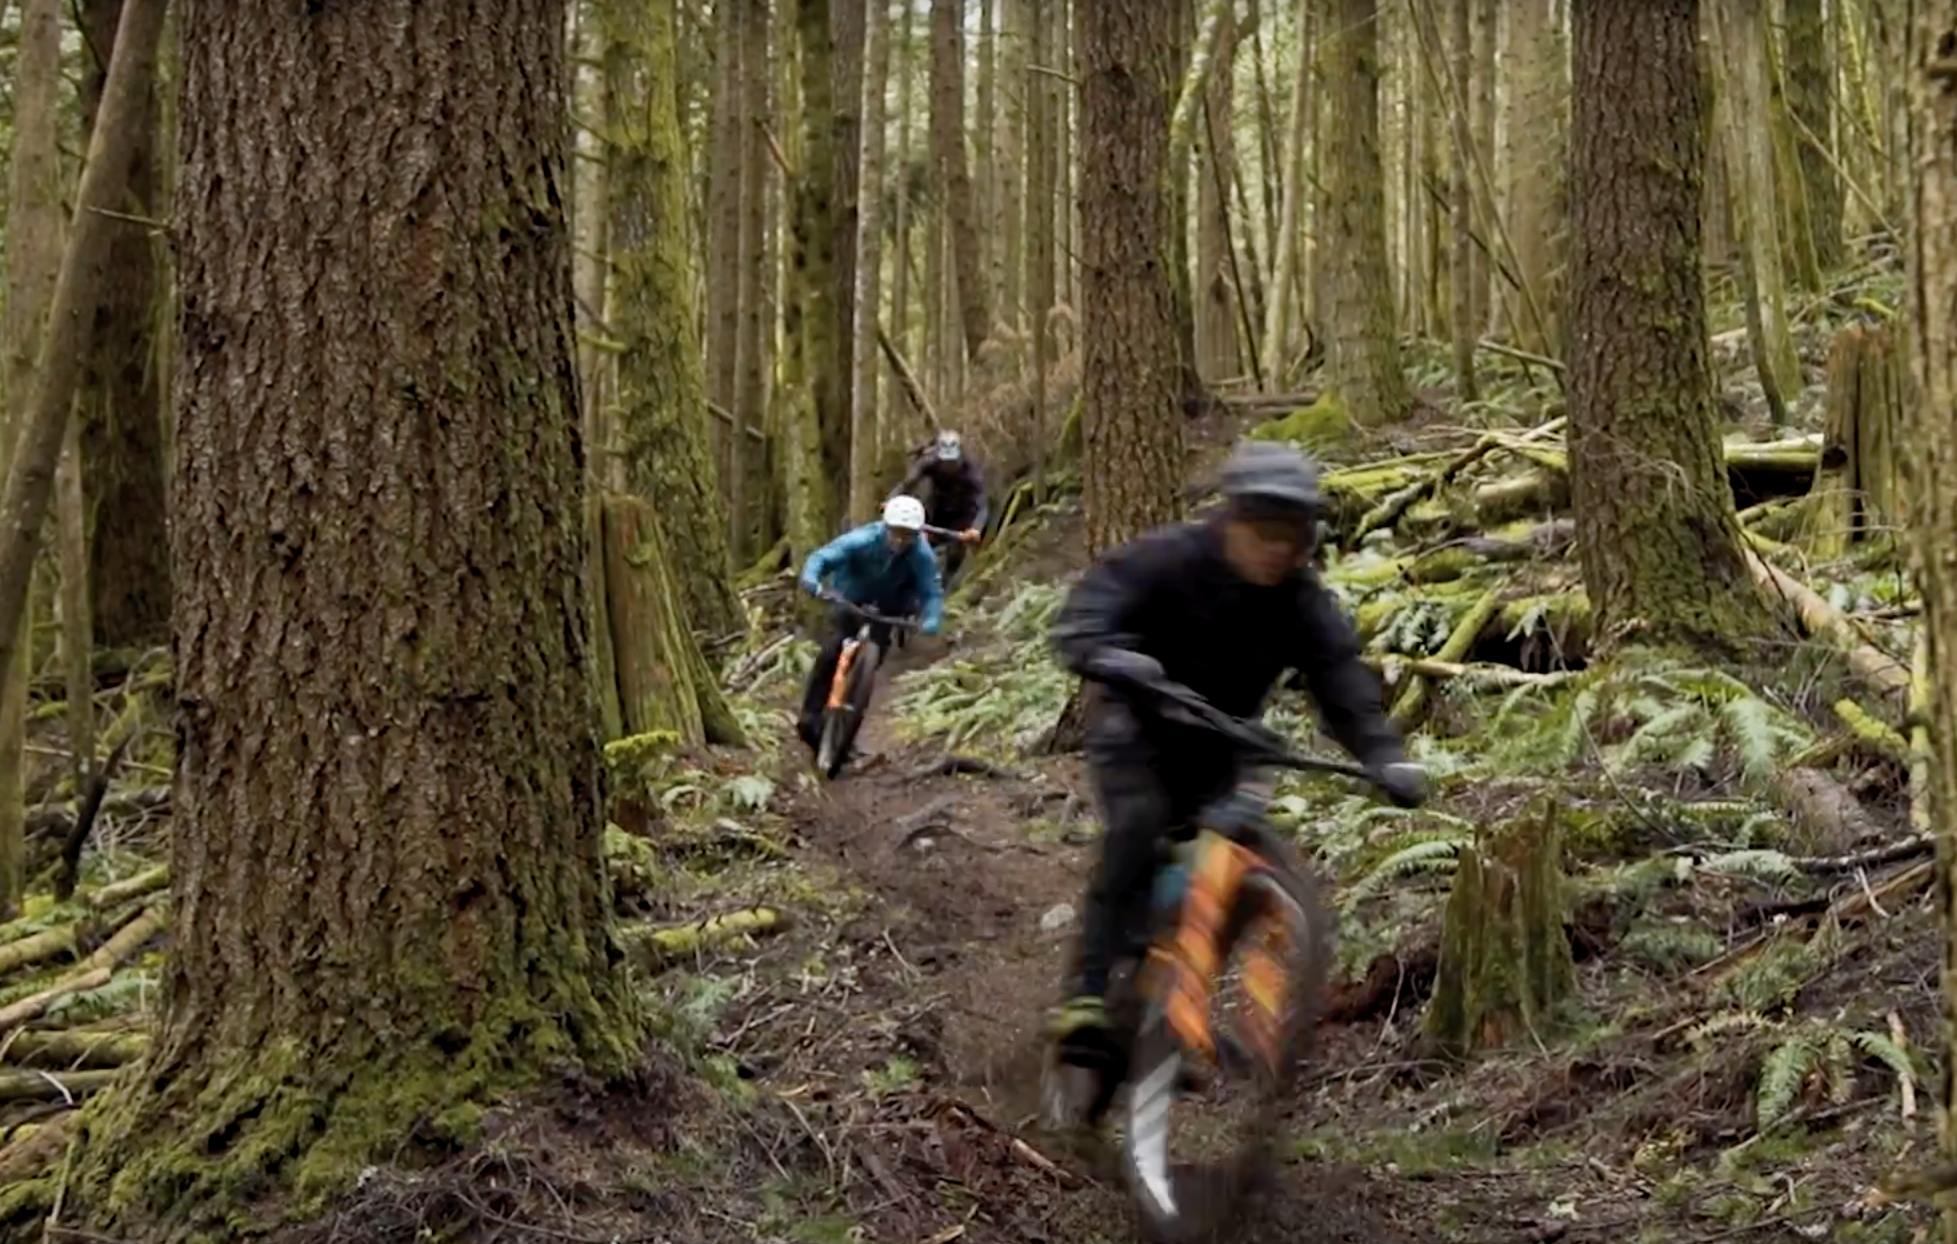 Thomas Vanderham, Featuring Remi Gauvin and Jesse Melamed shred the Squamish trails.